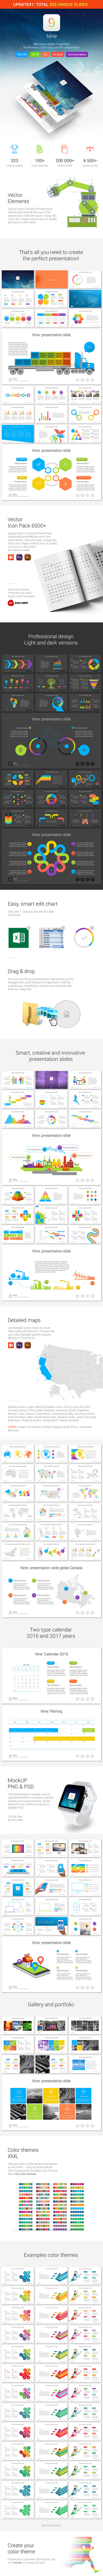 Nine - Business PowerPoint Templates